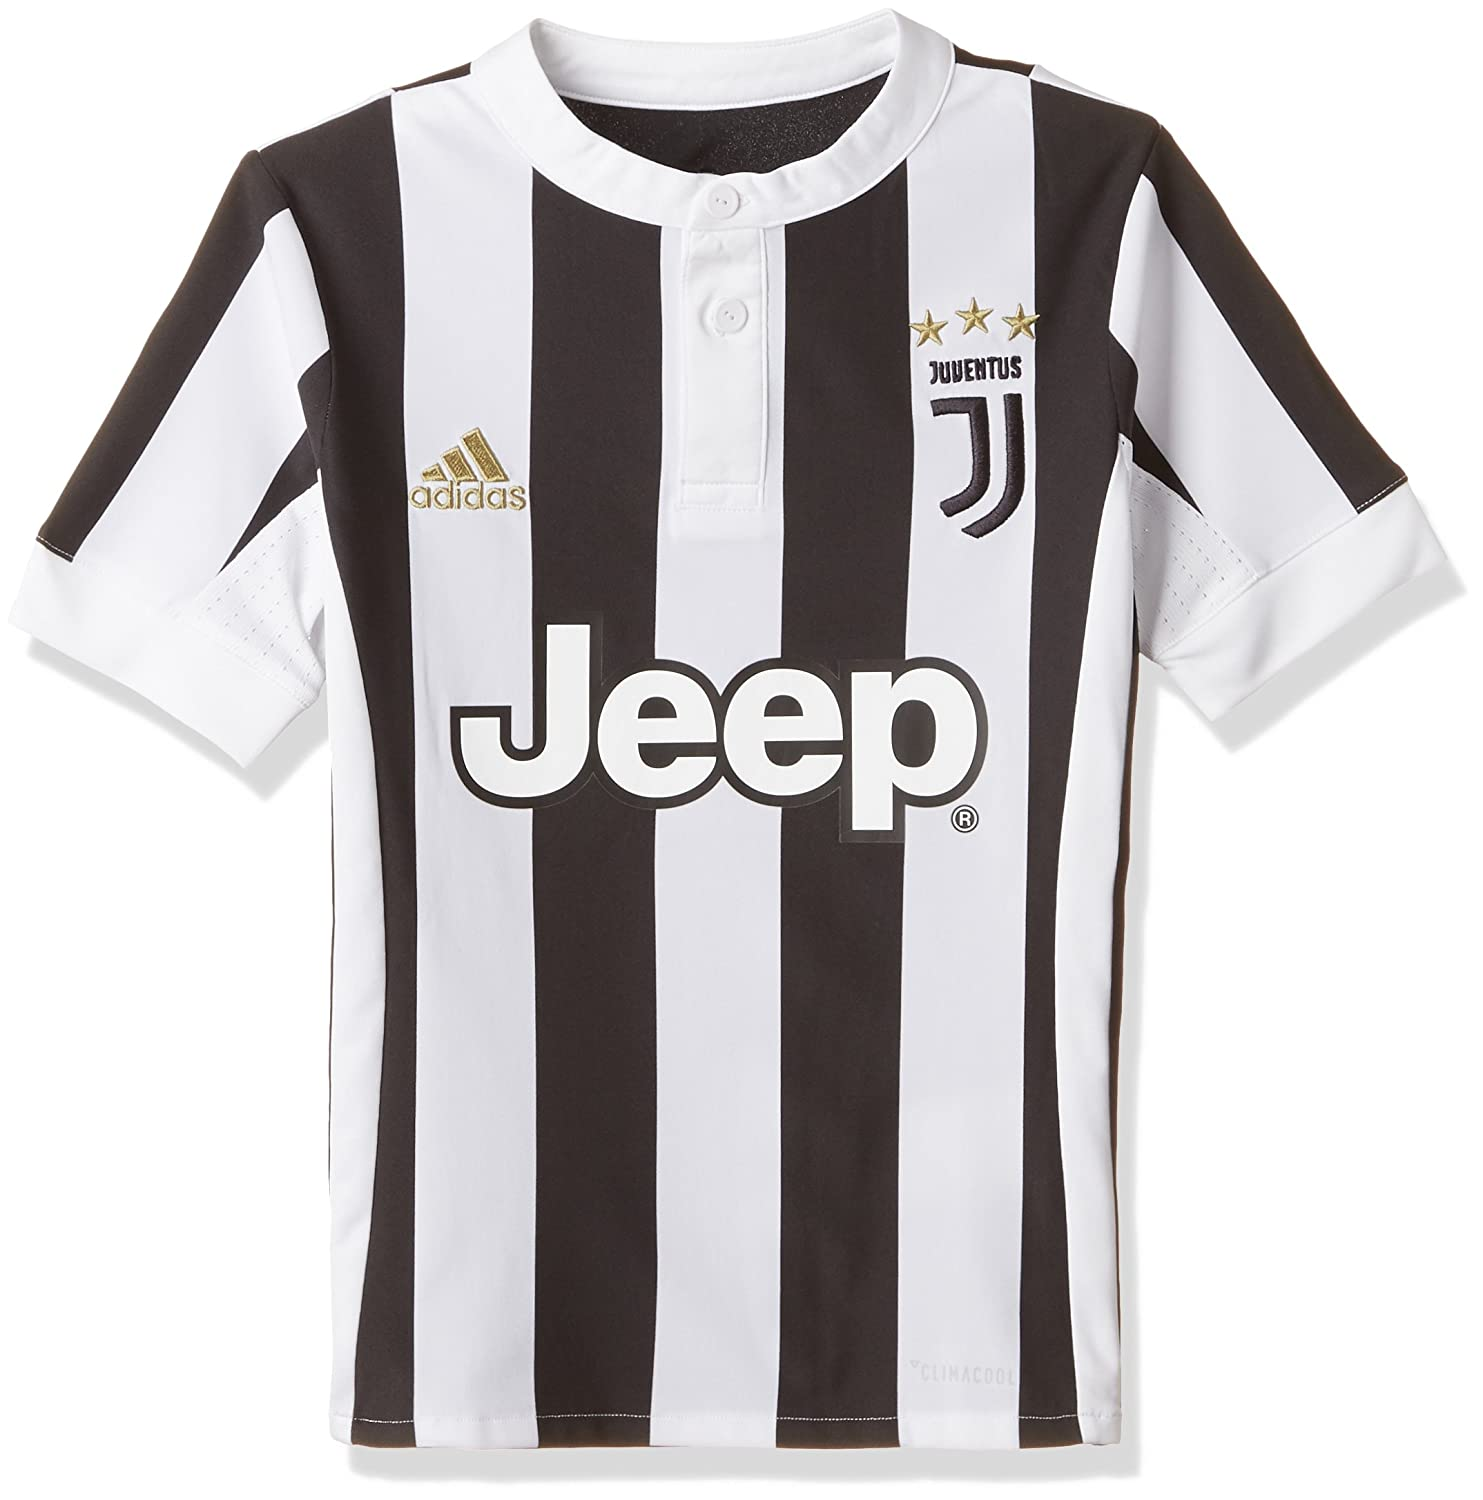 2a4867911 Amazon.com : adidas Juventus Kids Home Shirt 2017/18-13-14 Years : Clothing